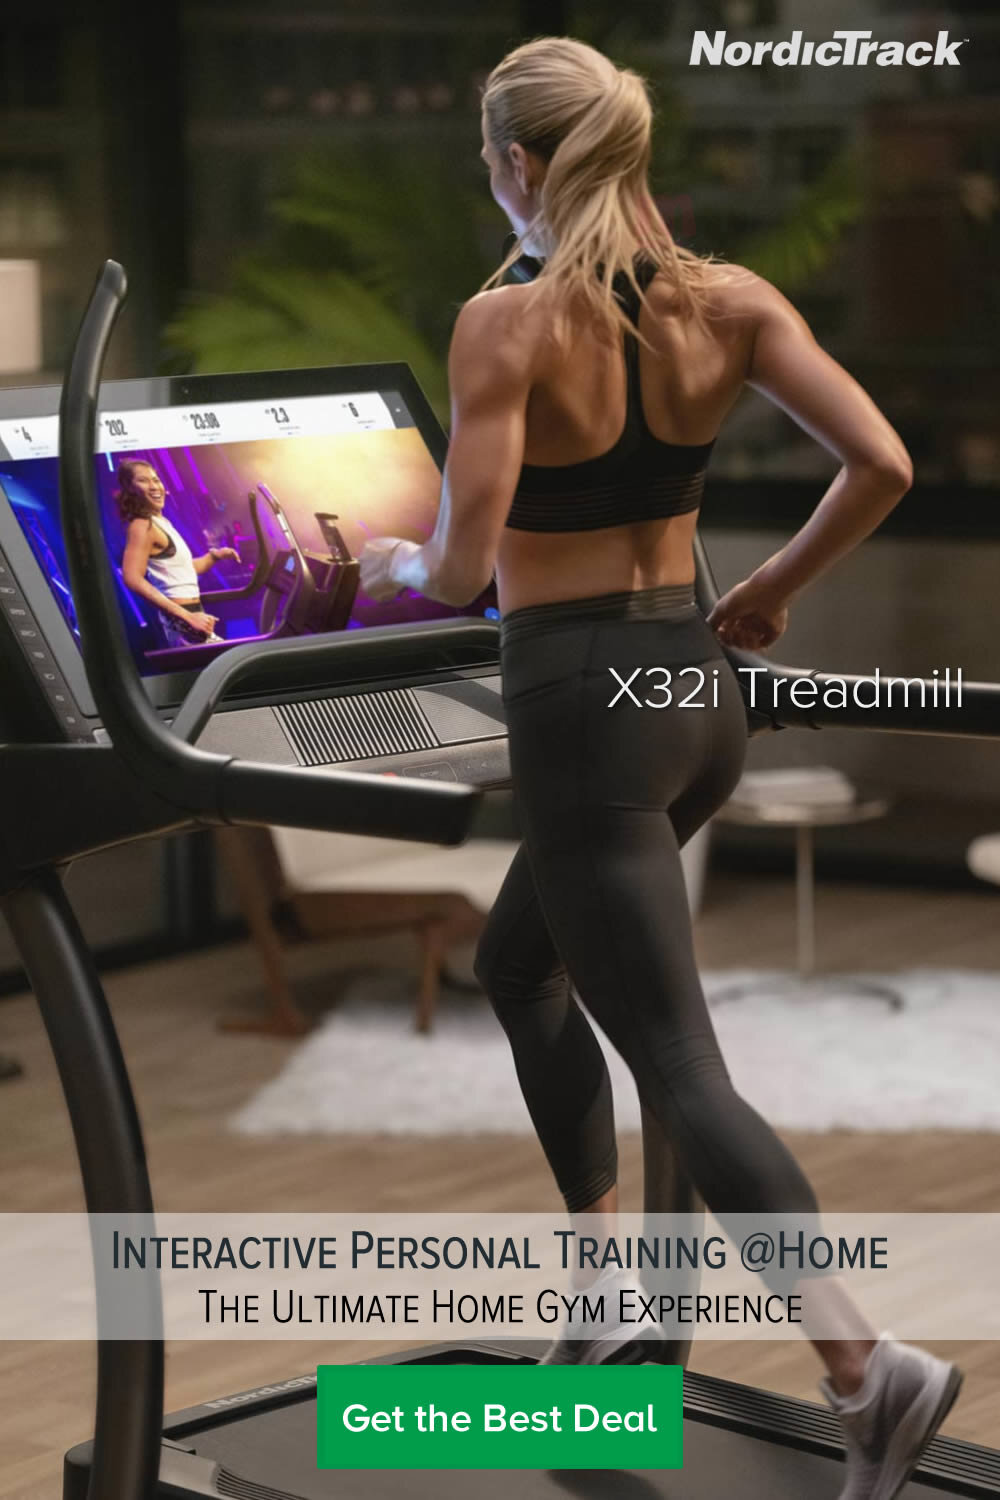 Nordictrack X32i Incline Treadmill with Interactive  training at Home